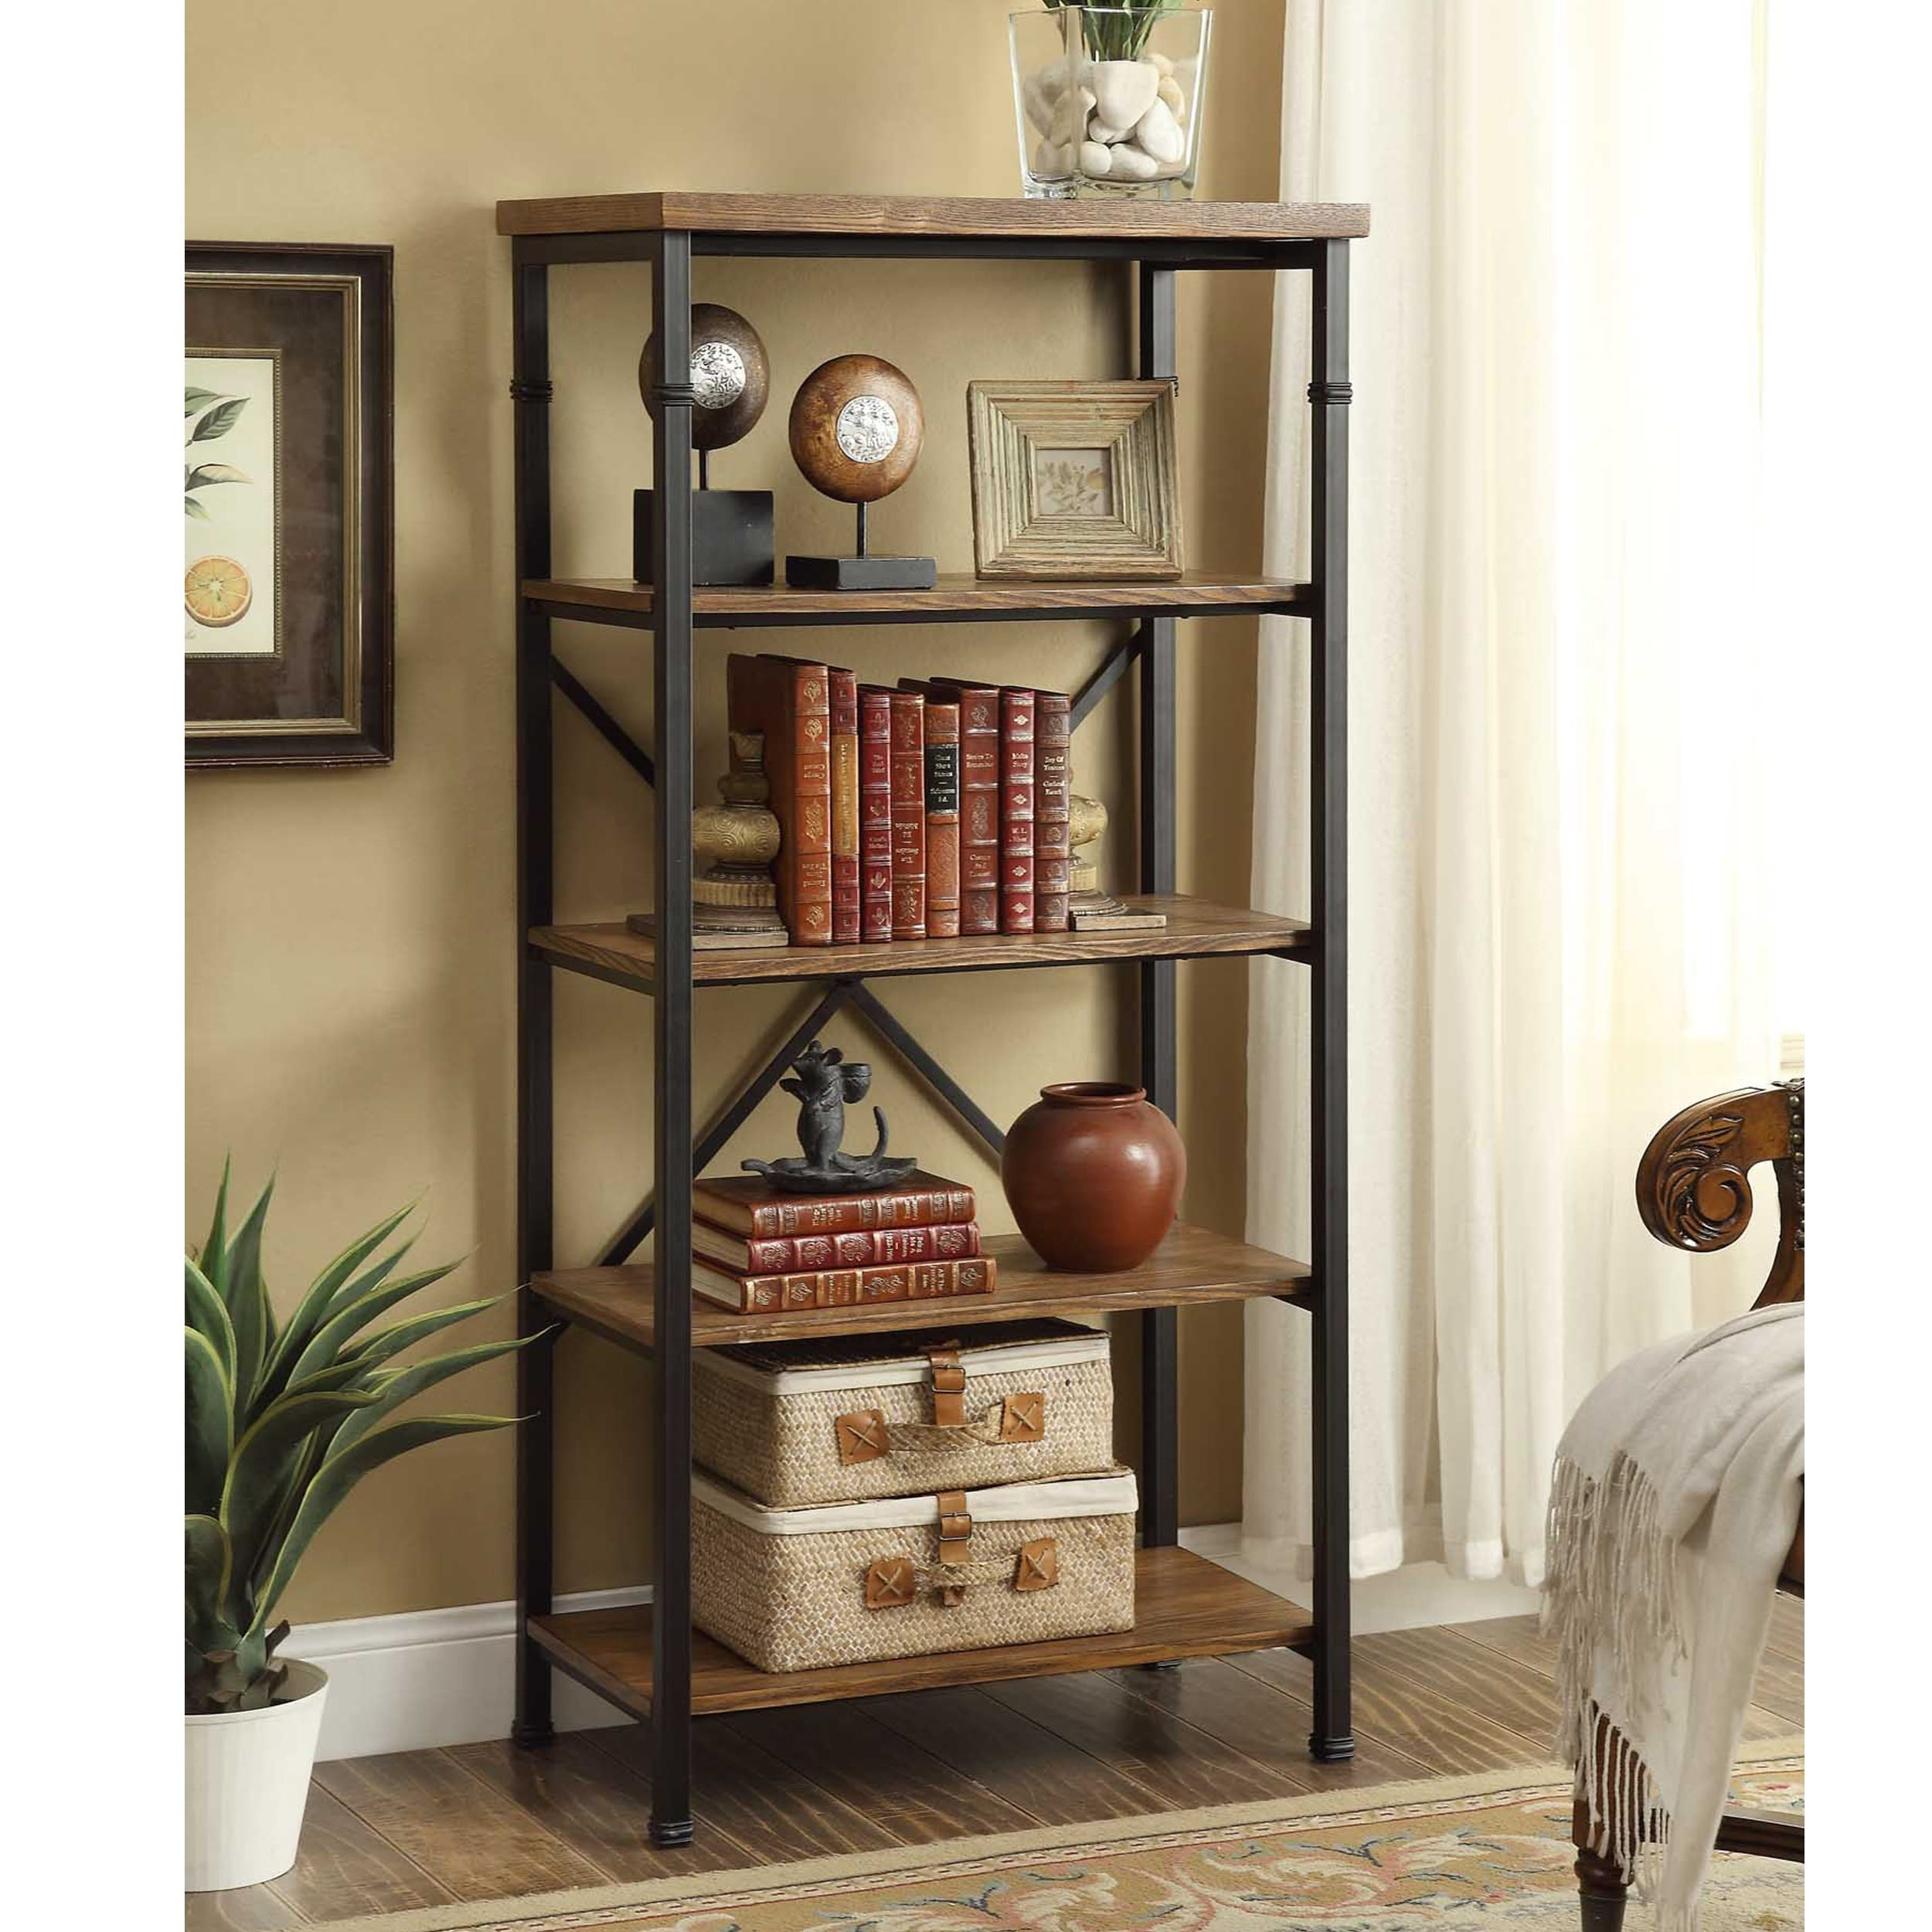 bookcase desk gradient angled bookshelf ip walmart com espresso ameriwood home ladder